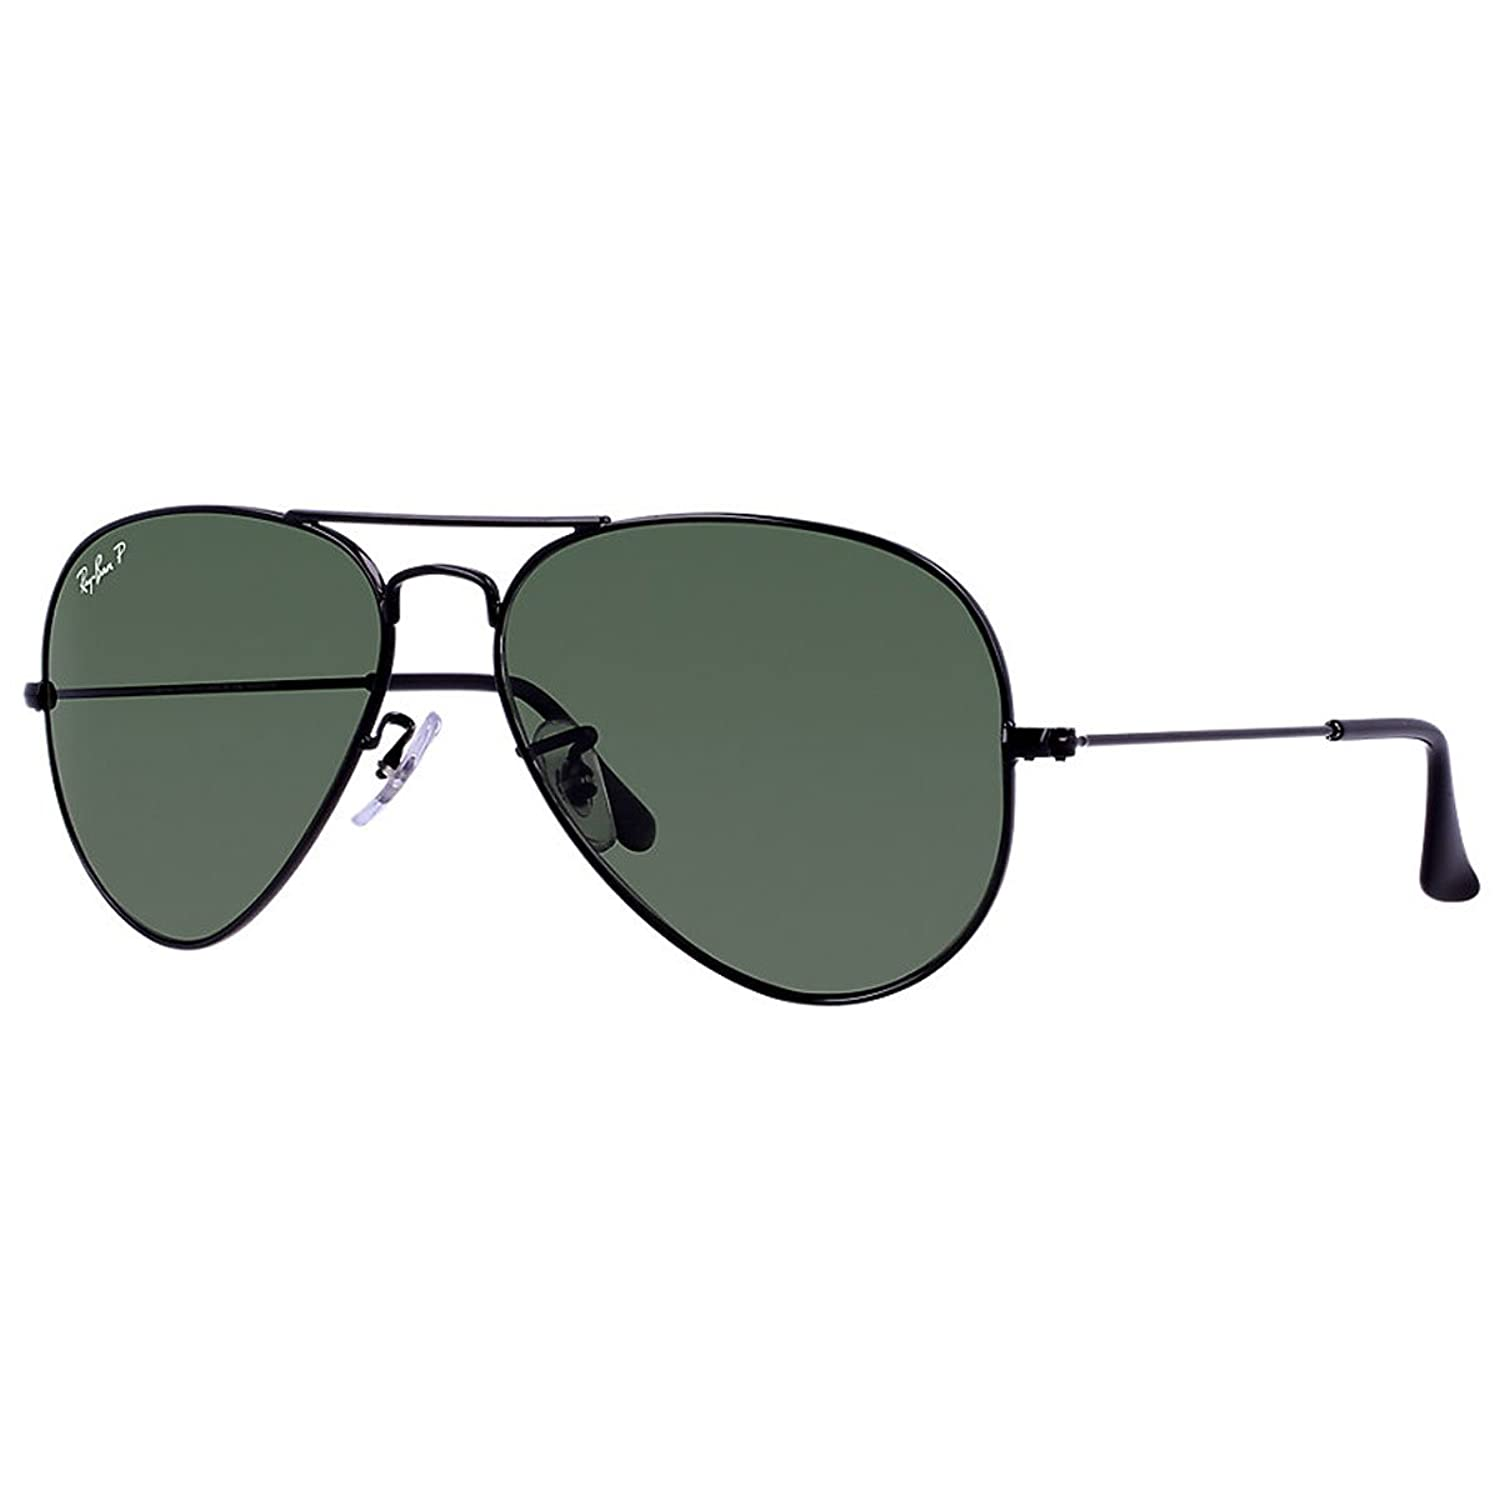 Ray Ban Gafas de sol Aviador RB Aviator Large Metal Black schwarz